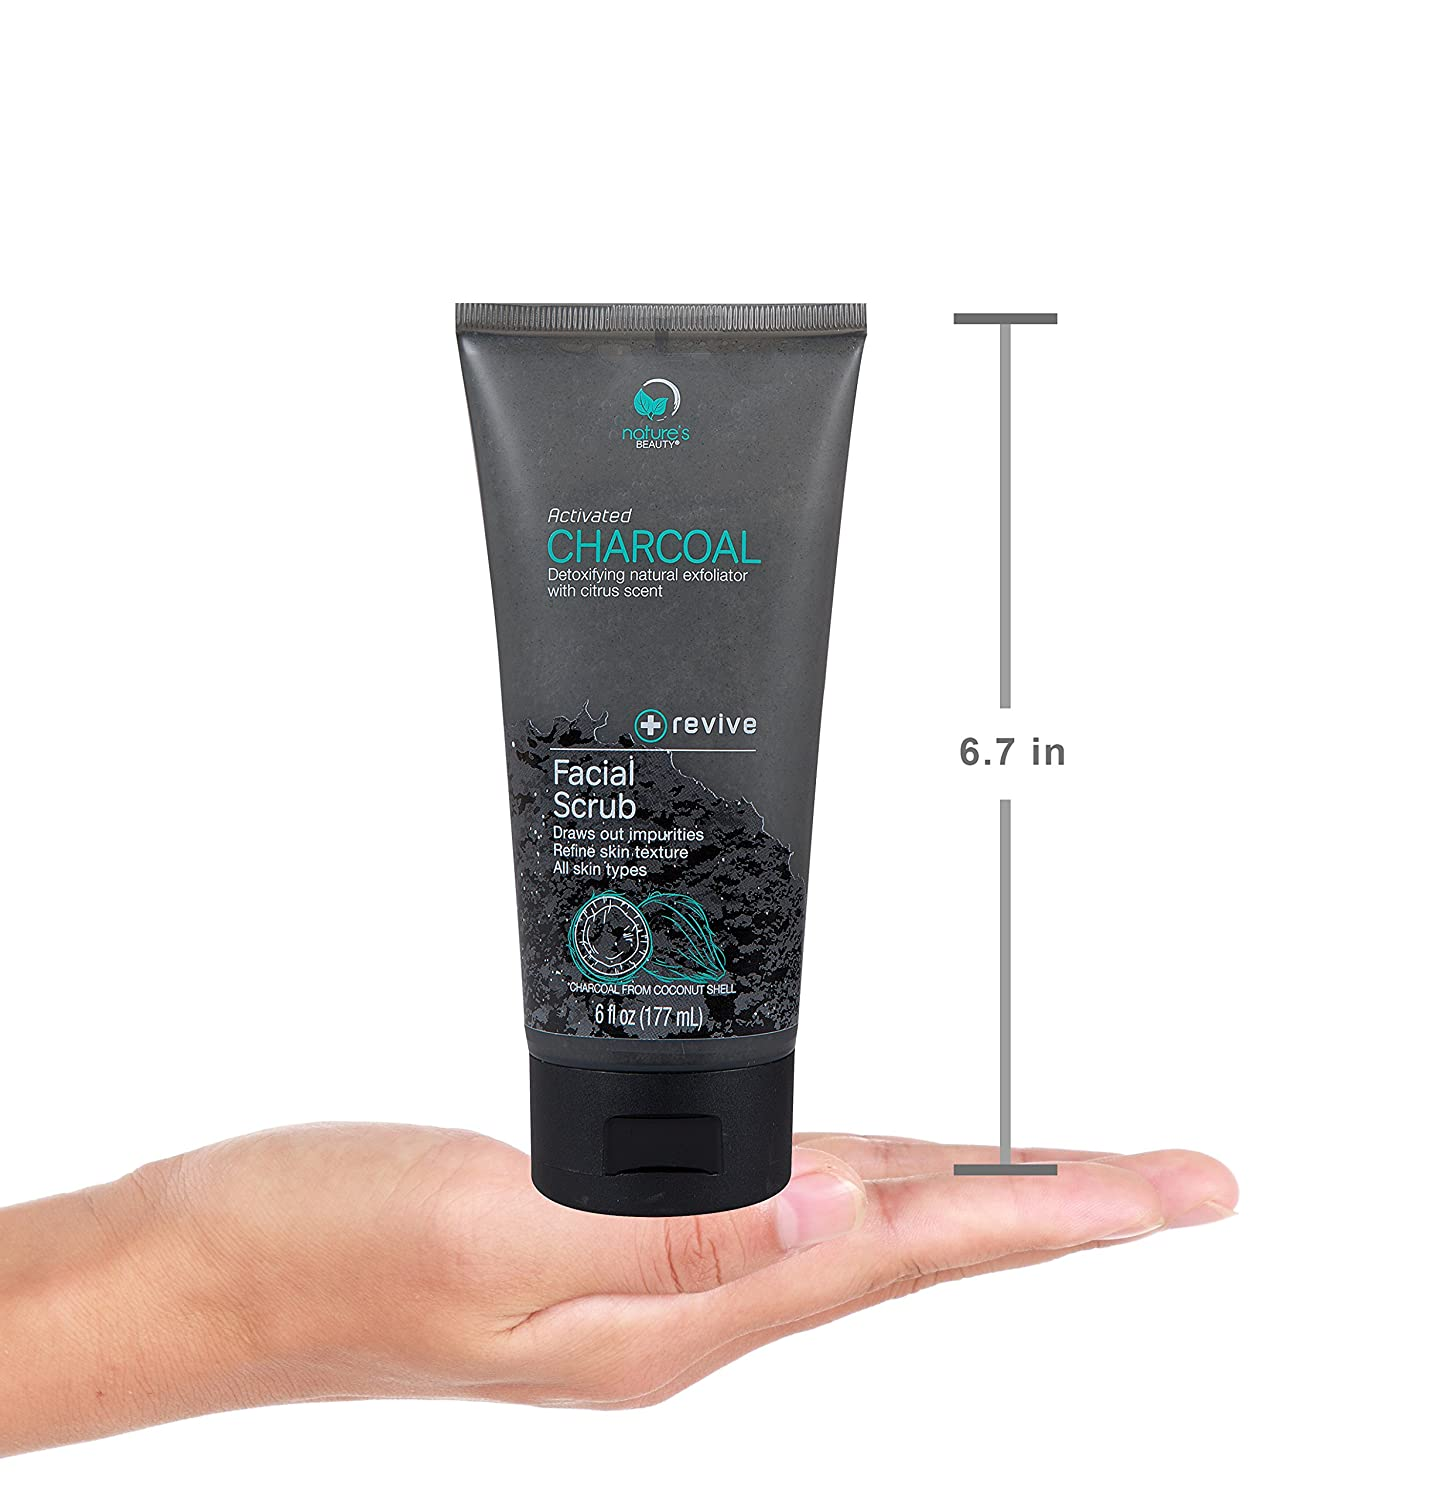 Nature's Beauty Activated Charcoal Facial Scrub, Made in USA, Detoxifying Natural Exfoliator with Citrus Scent, Revives and Refines Skin, Charcoal from Coconut Shell, For Men and Women - 6 fl oz: Beauty